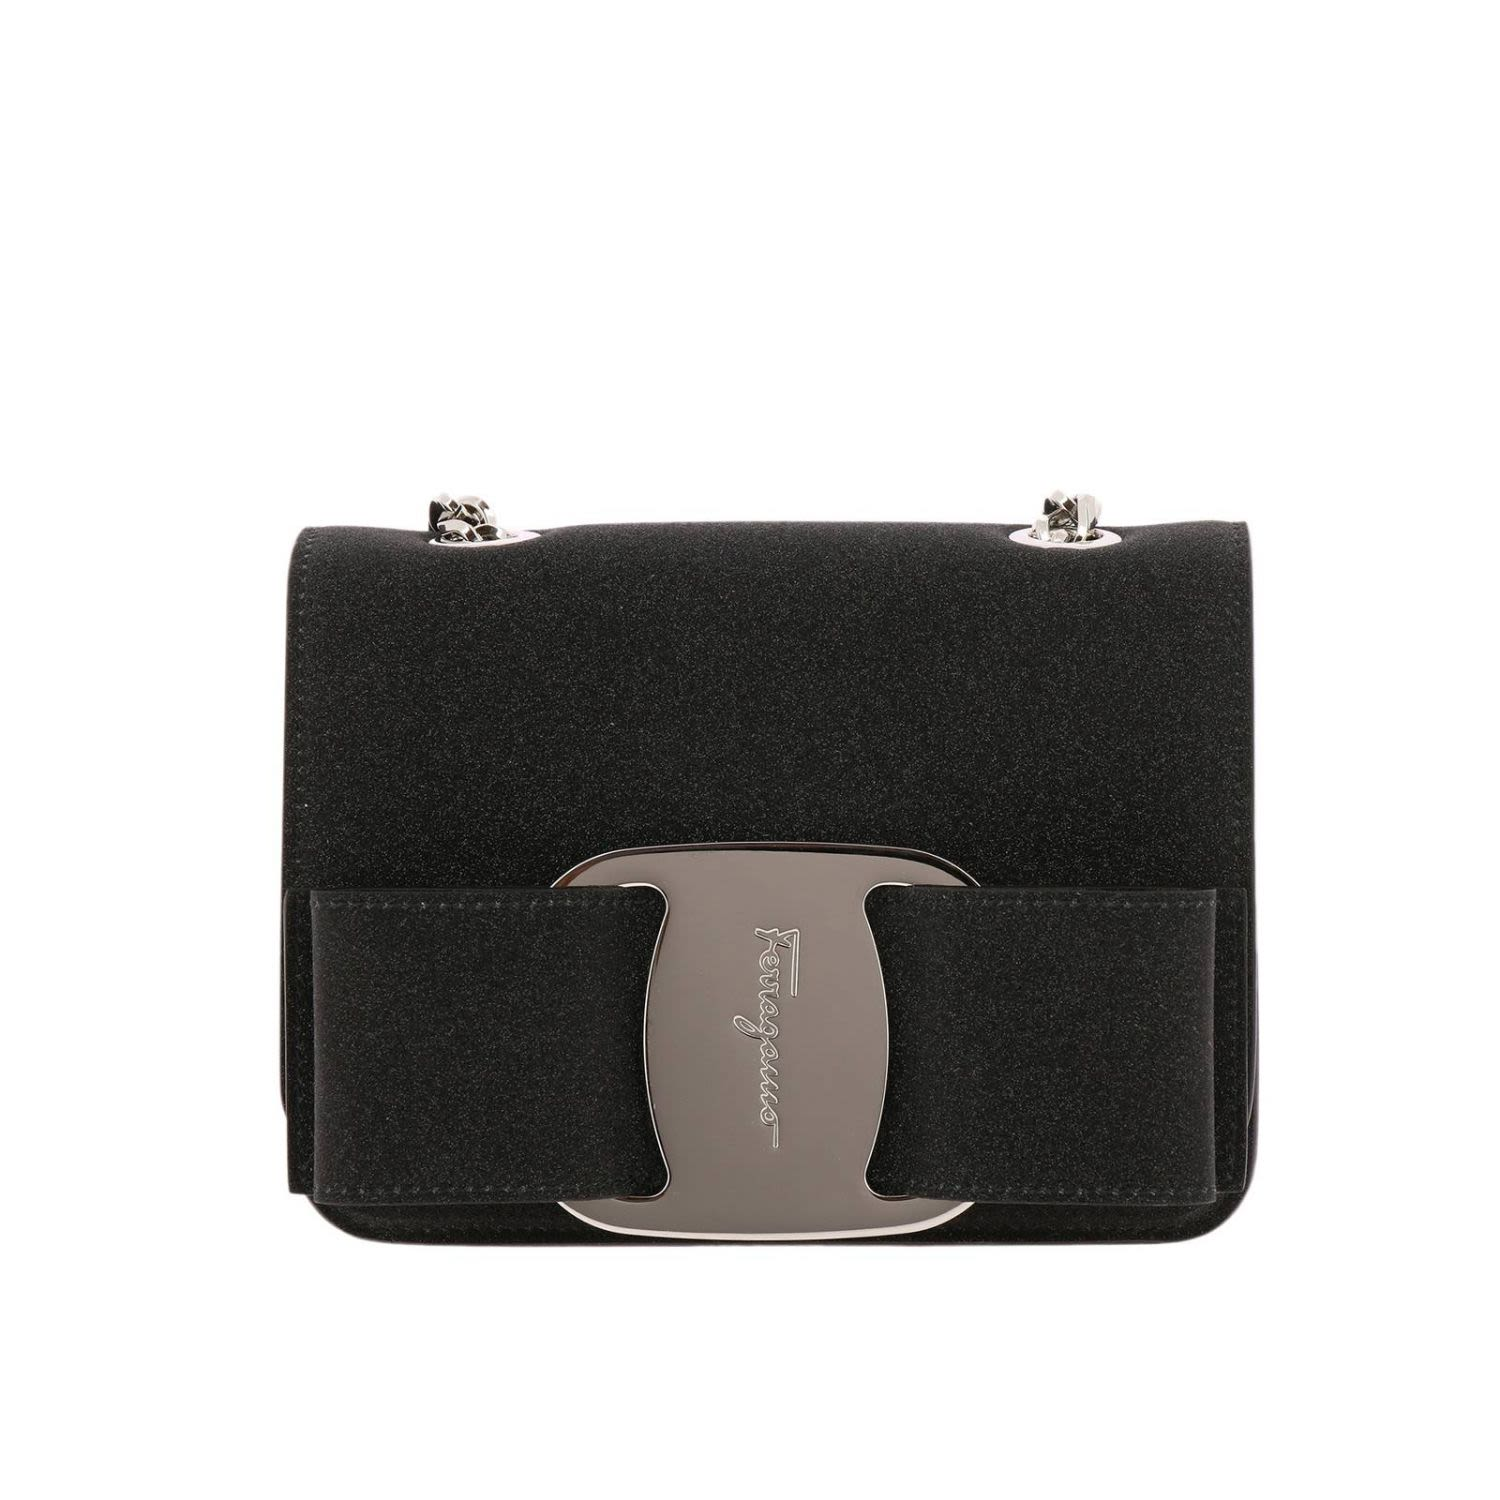 98d66914c796 Mini Bag Shoulder Bag Women by Salvatore Ferragamo buy at SUNDAY30.COM